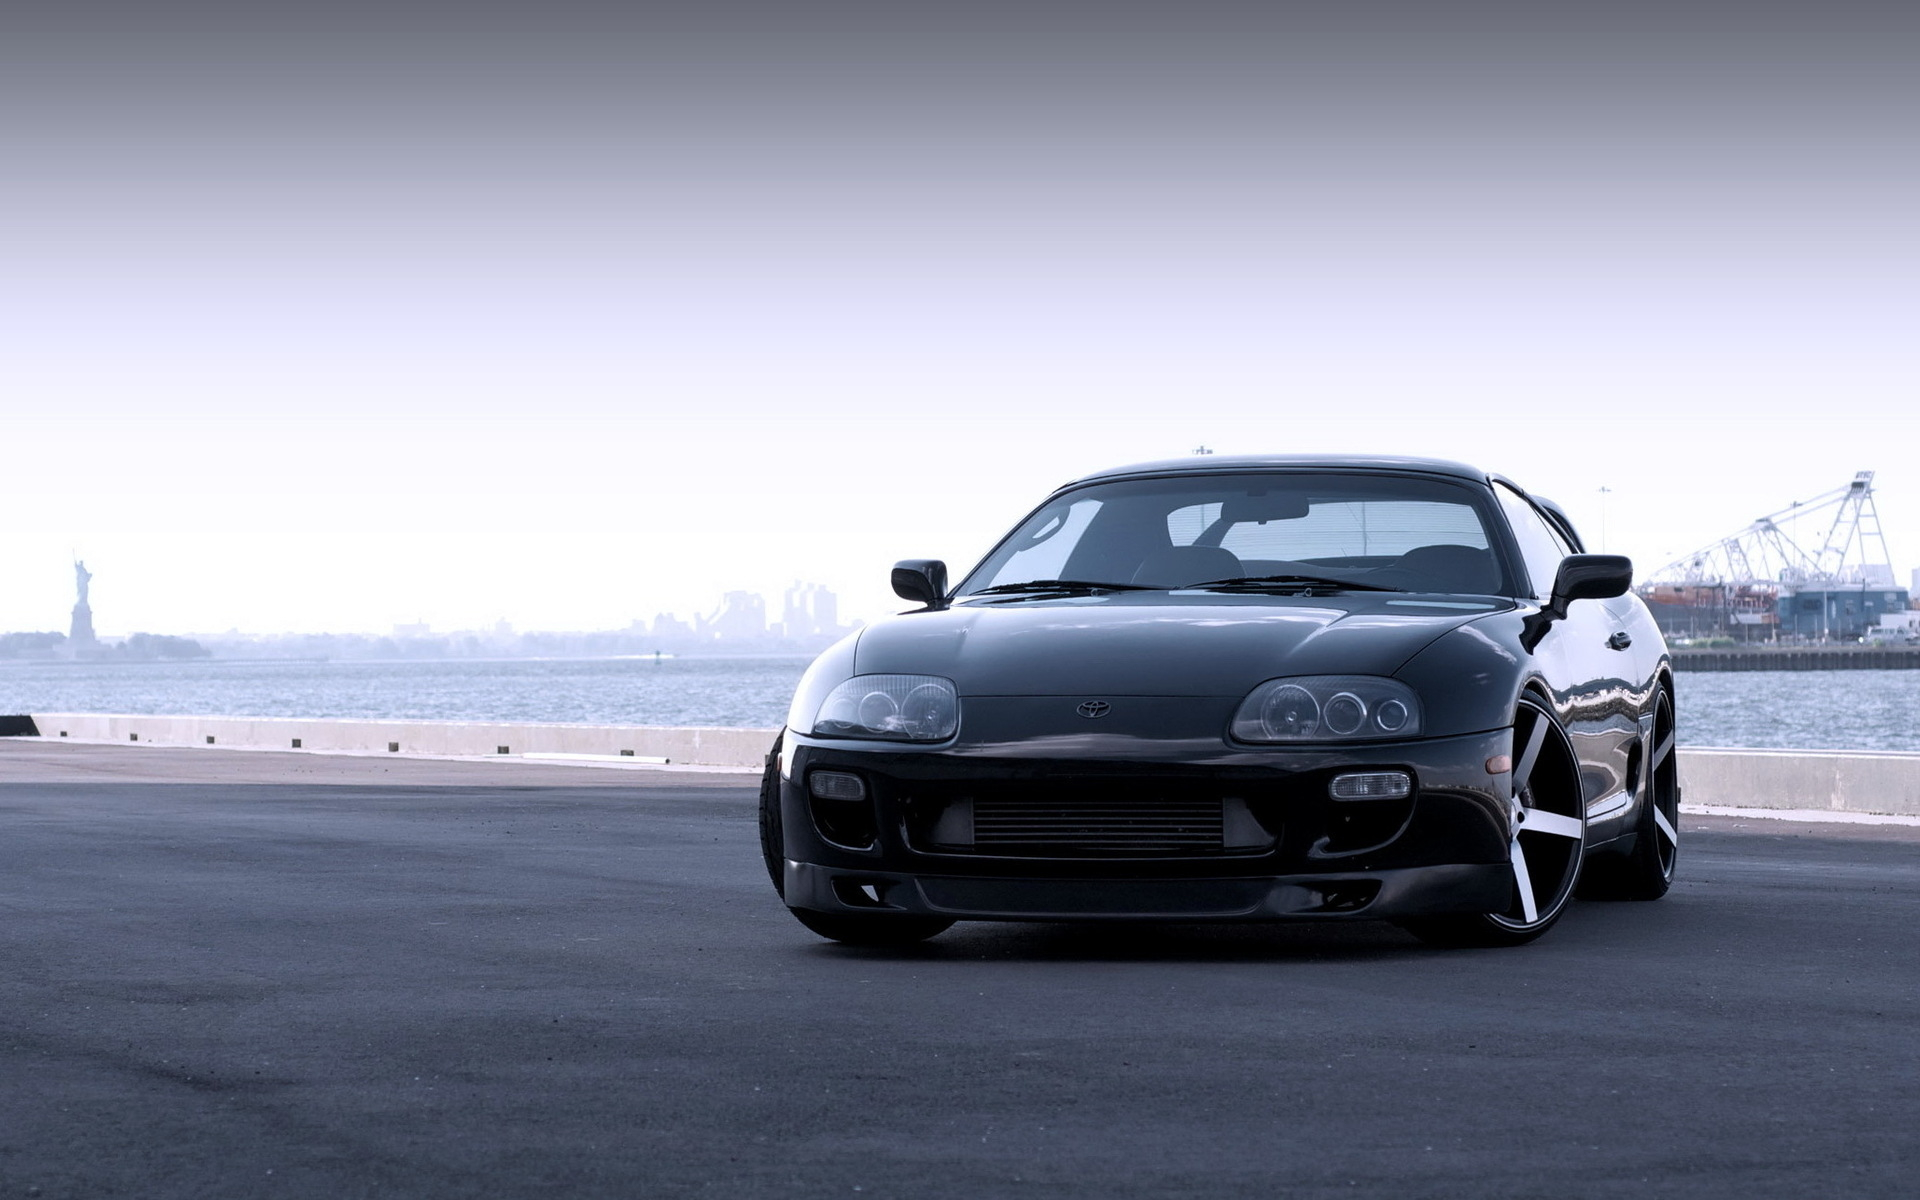 Toyota Supra wallpapers and images   wallpapers pictures photos 1920x1200